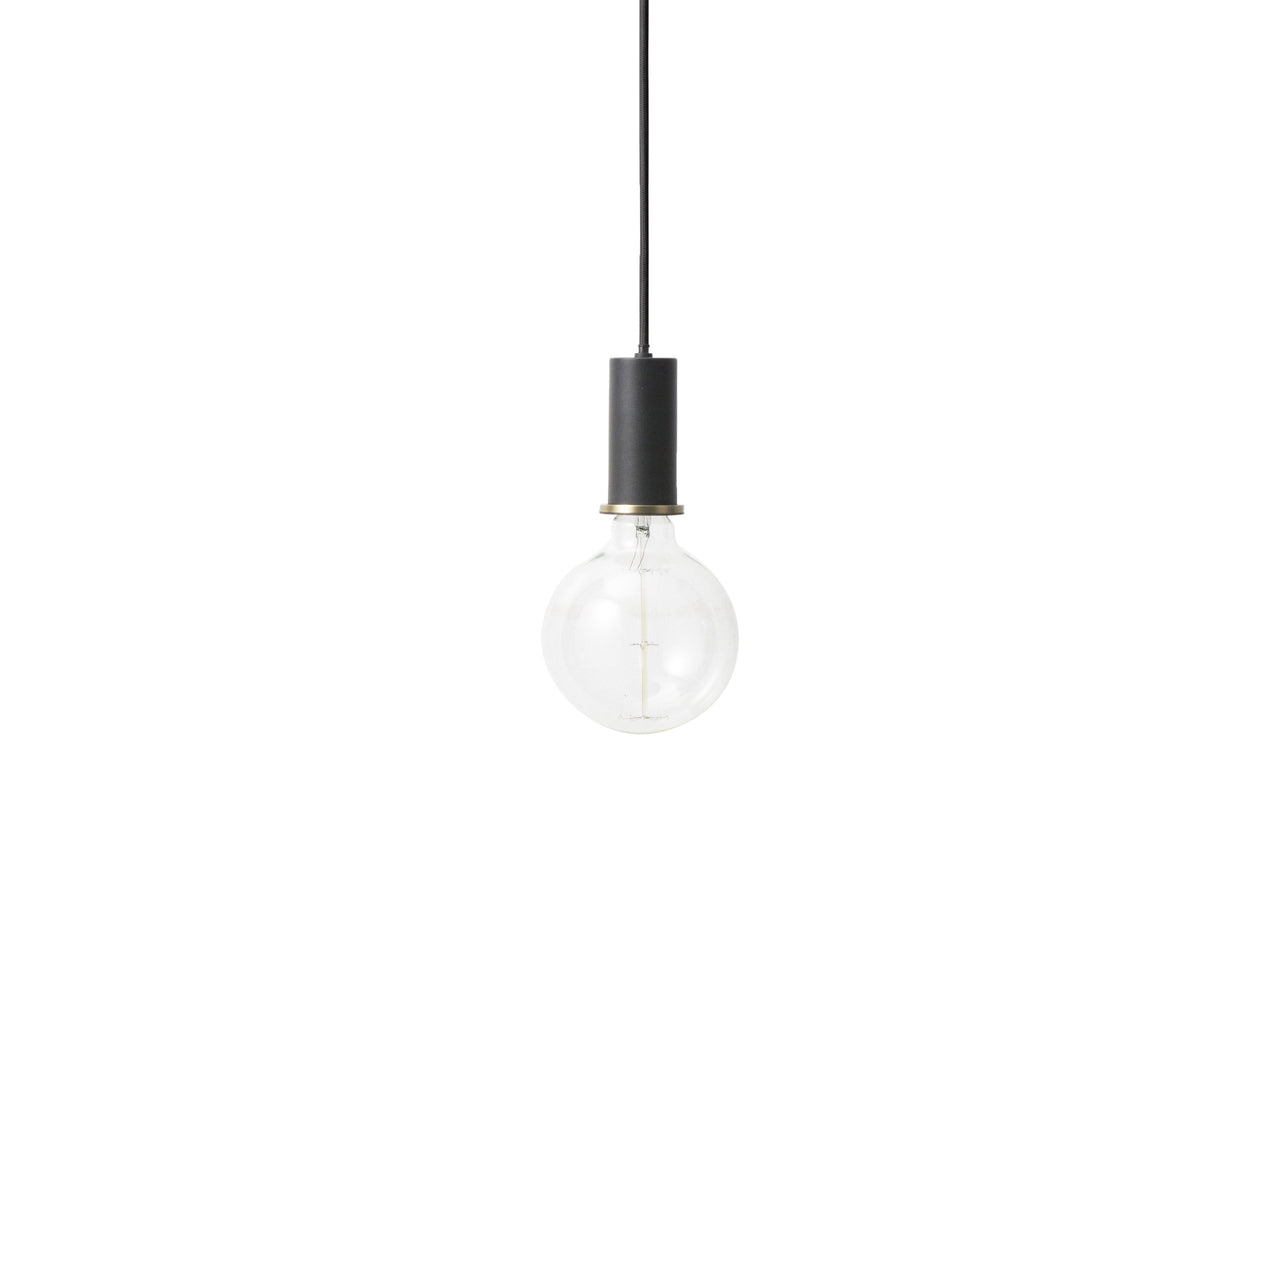 Collect Lighting: Pendant + Low + Black